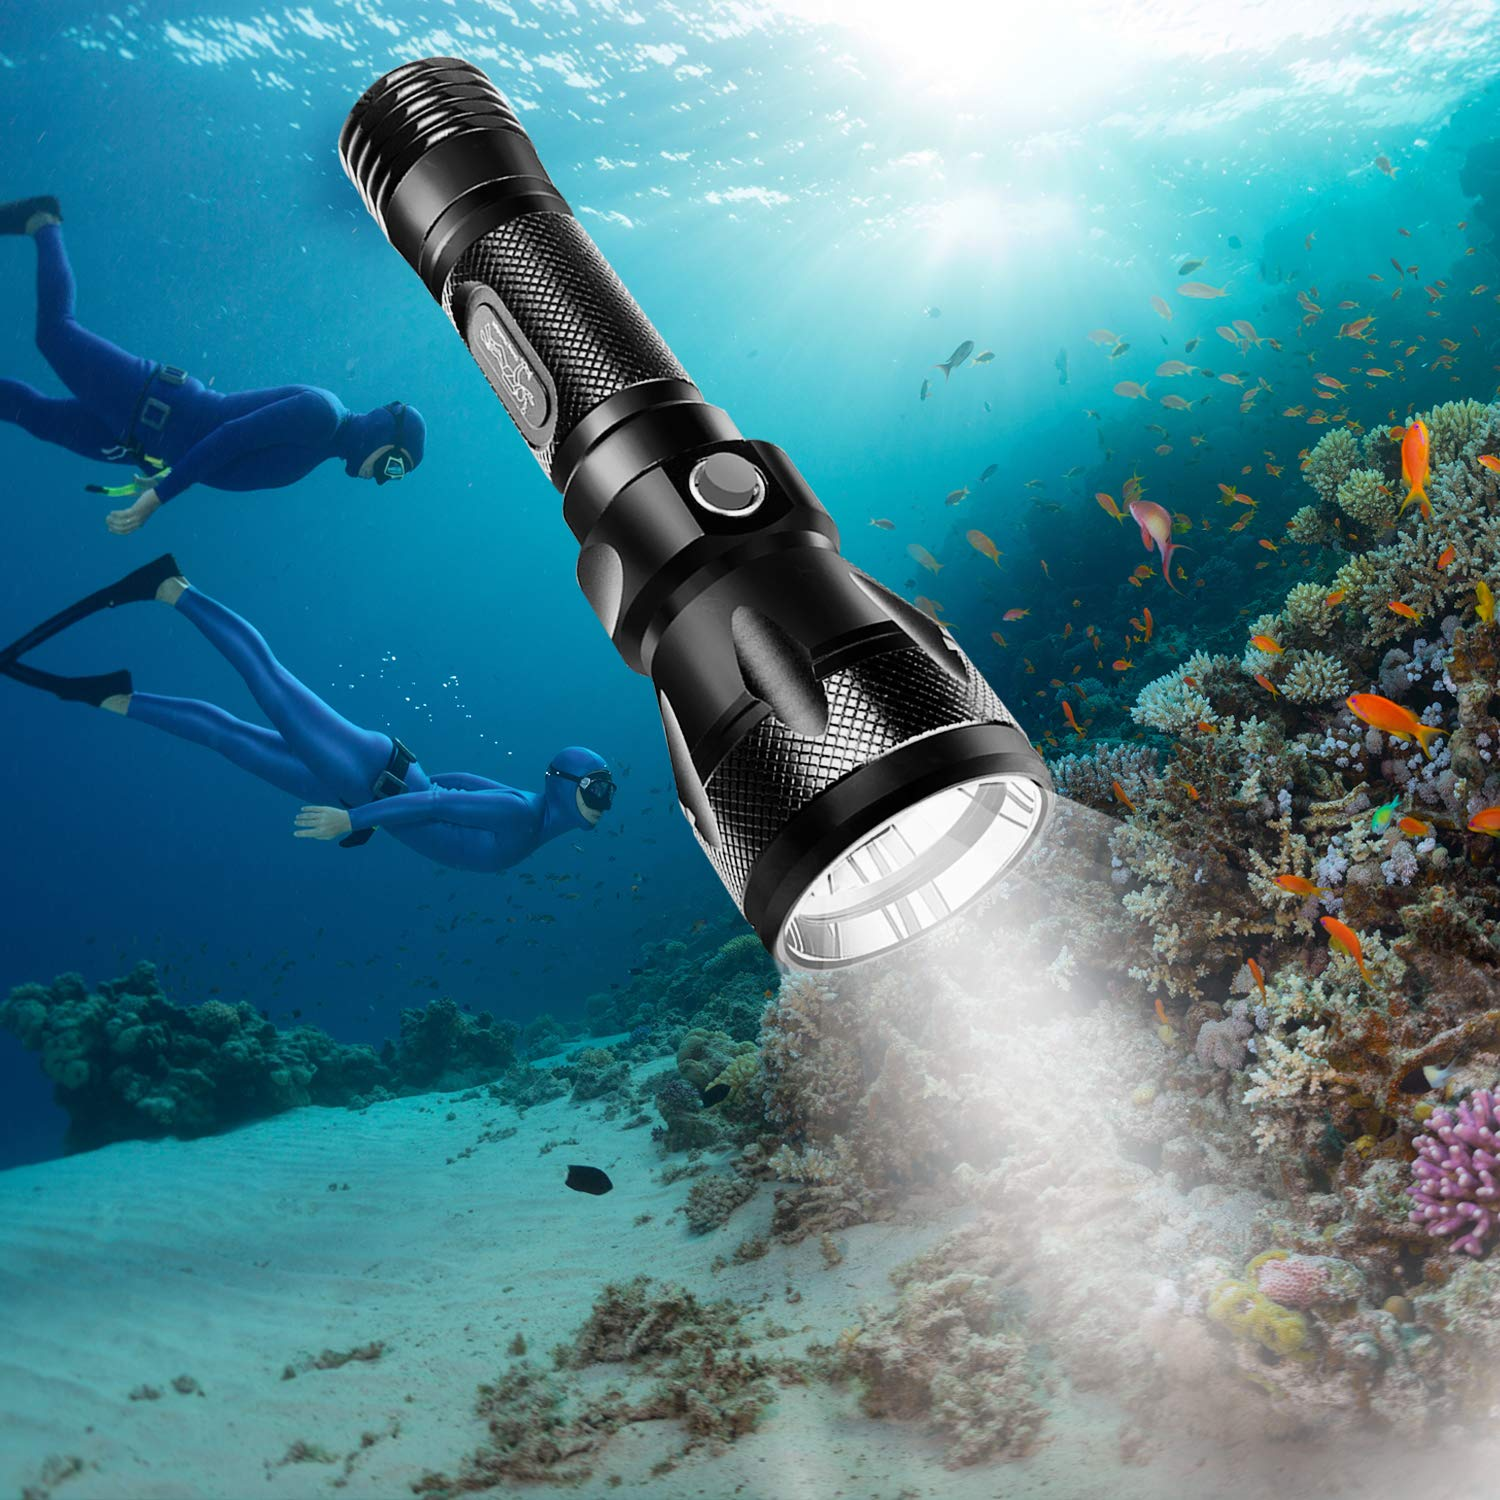 BlueFire Super Bright 1000LM CREE XM-L2 Scuba Dive Diving Flashlight 100m Underwater Torch Waterproof Submarine Light Scuba Safety Lights(Without Battery) by BlueFire